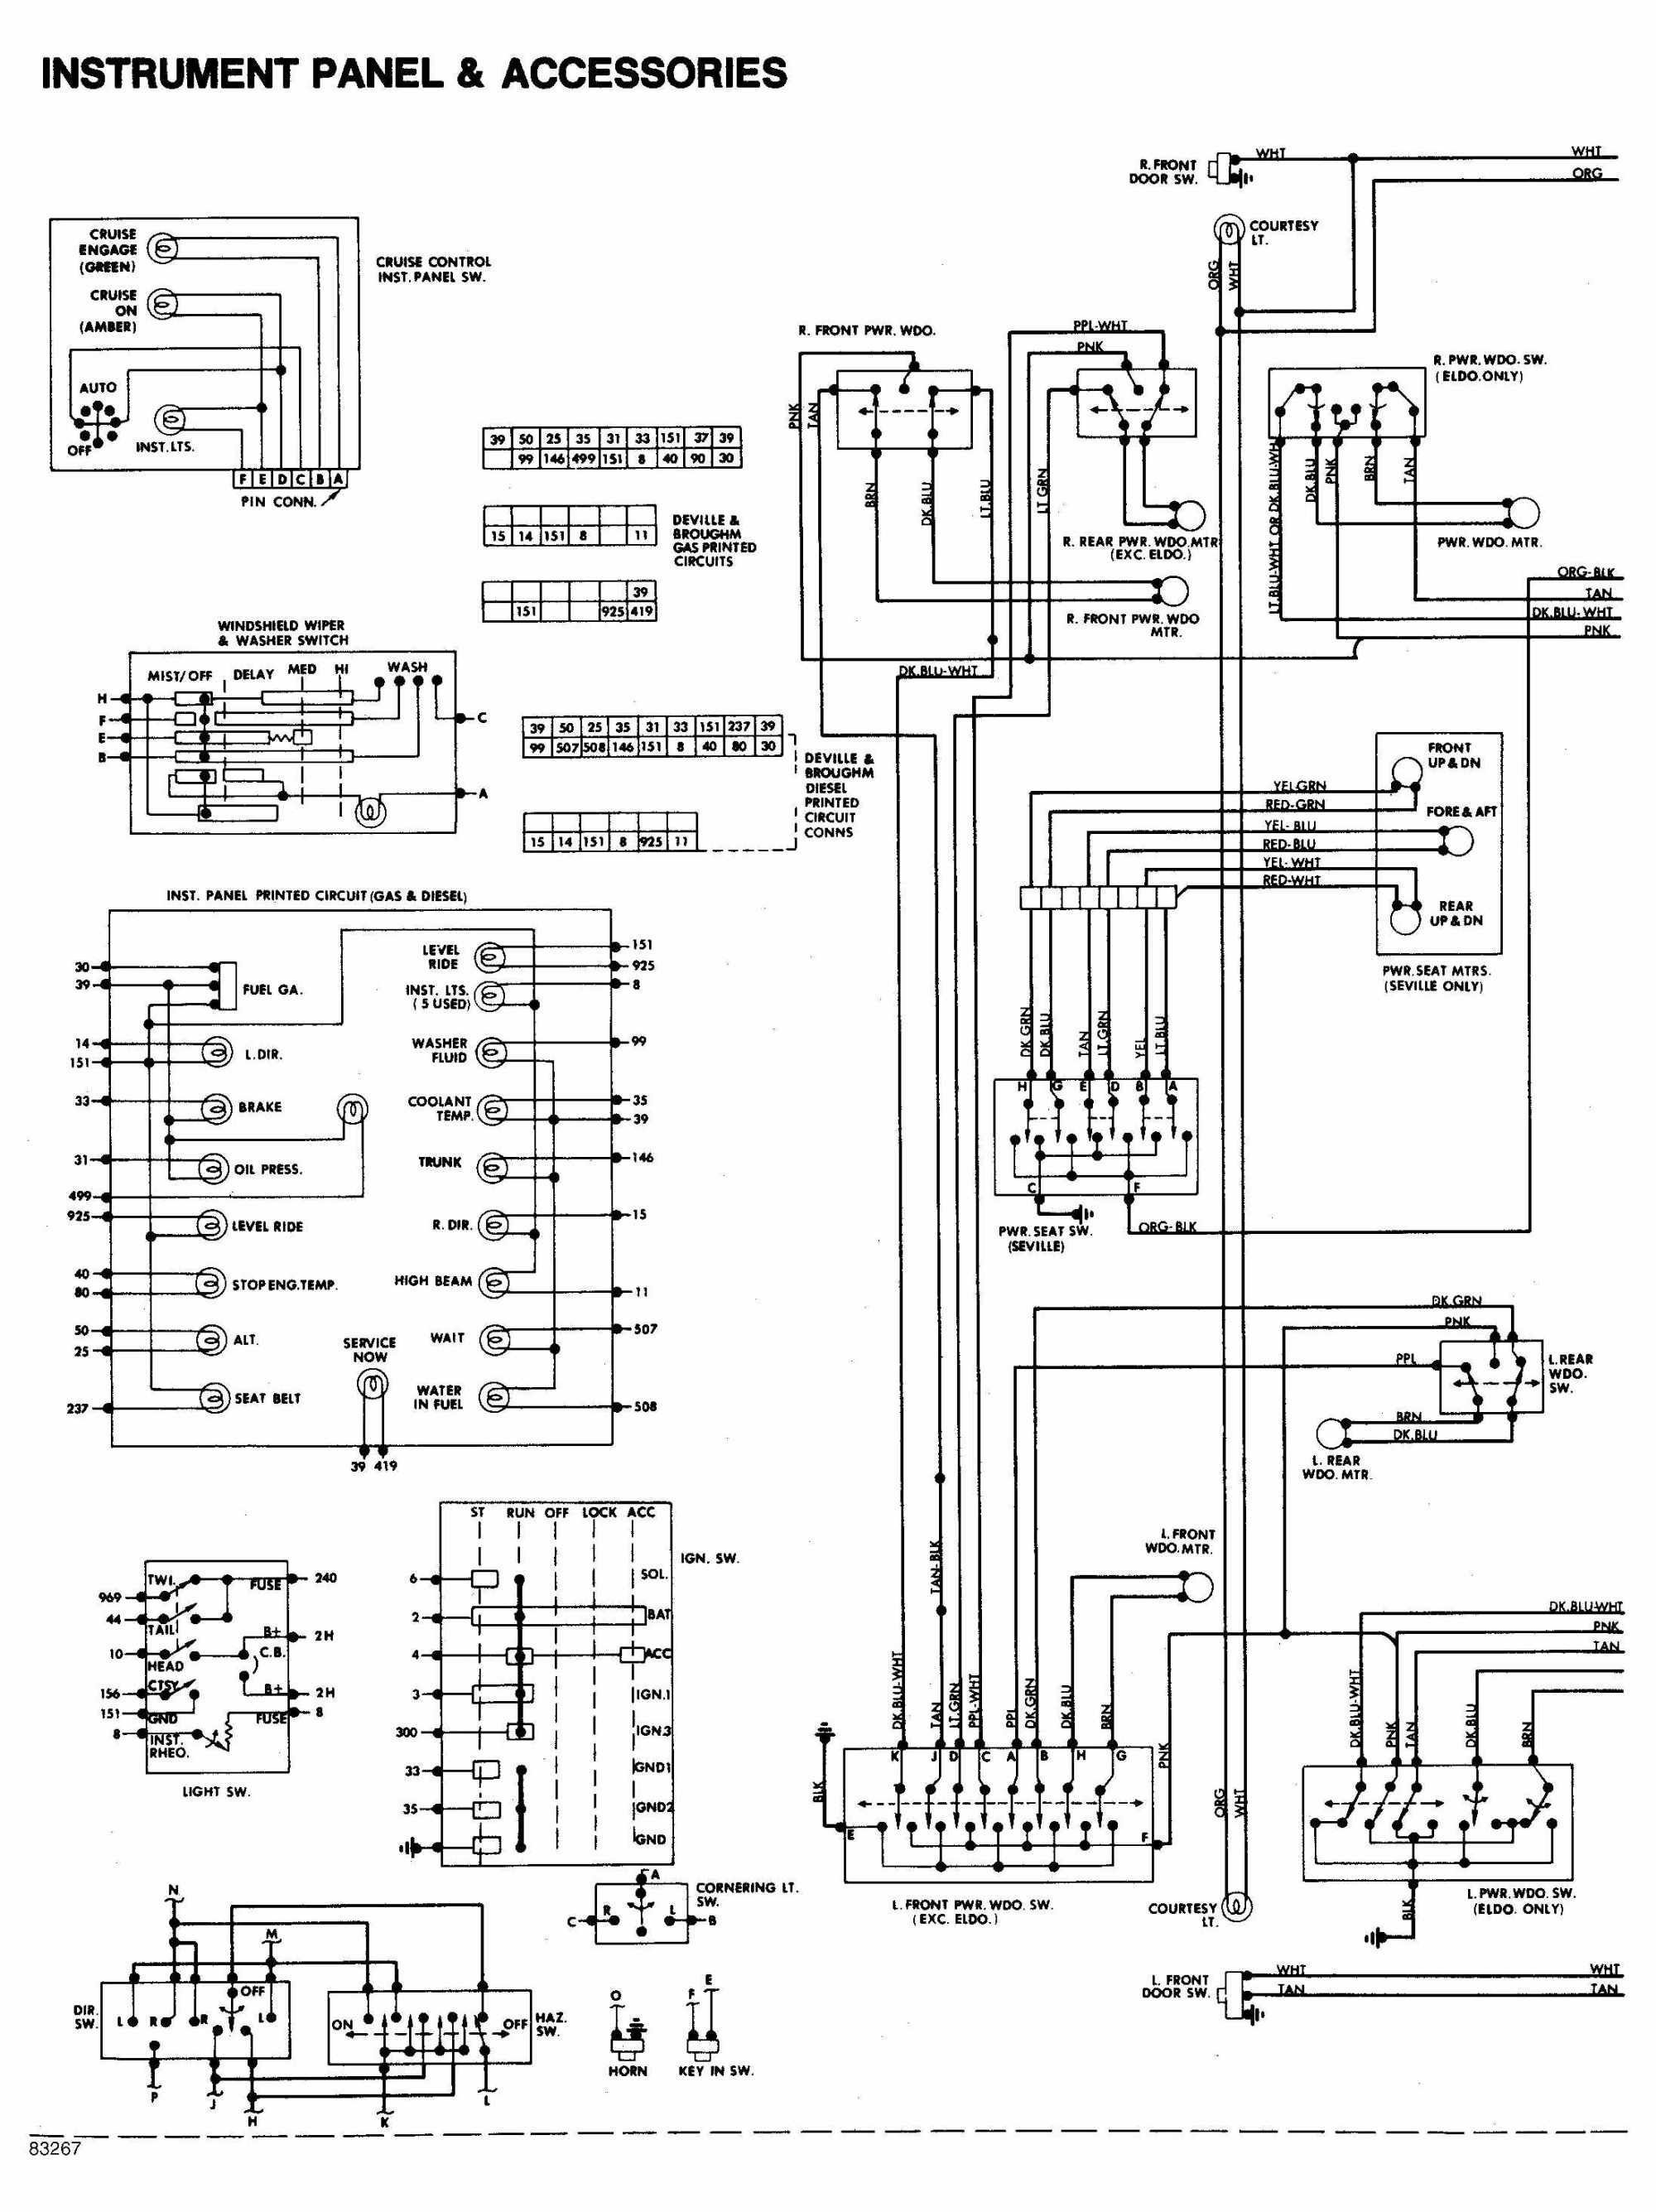 hight resolution of chevy diagrams gm wiring harness diagram 1984 cadillac deville instrument panel and accessories wiring diagram drawing